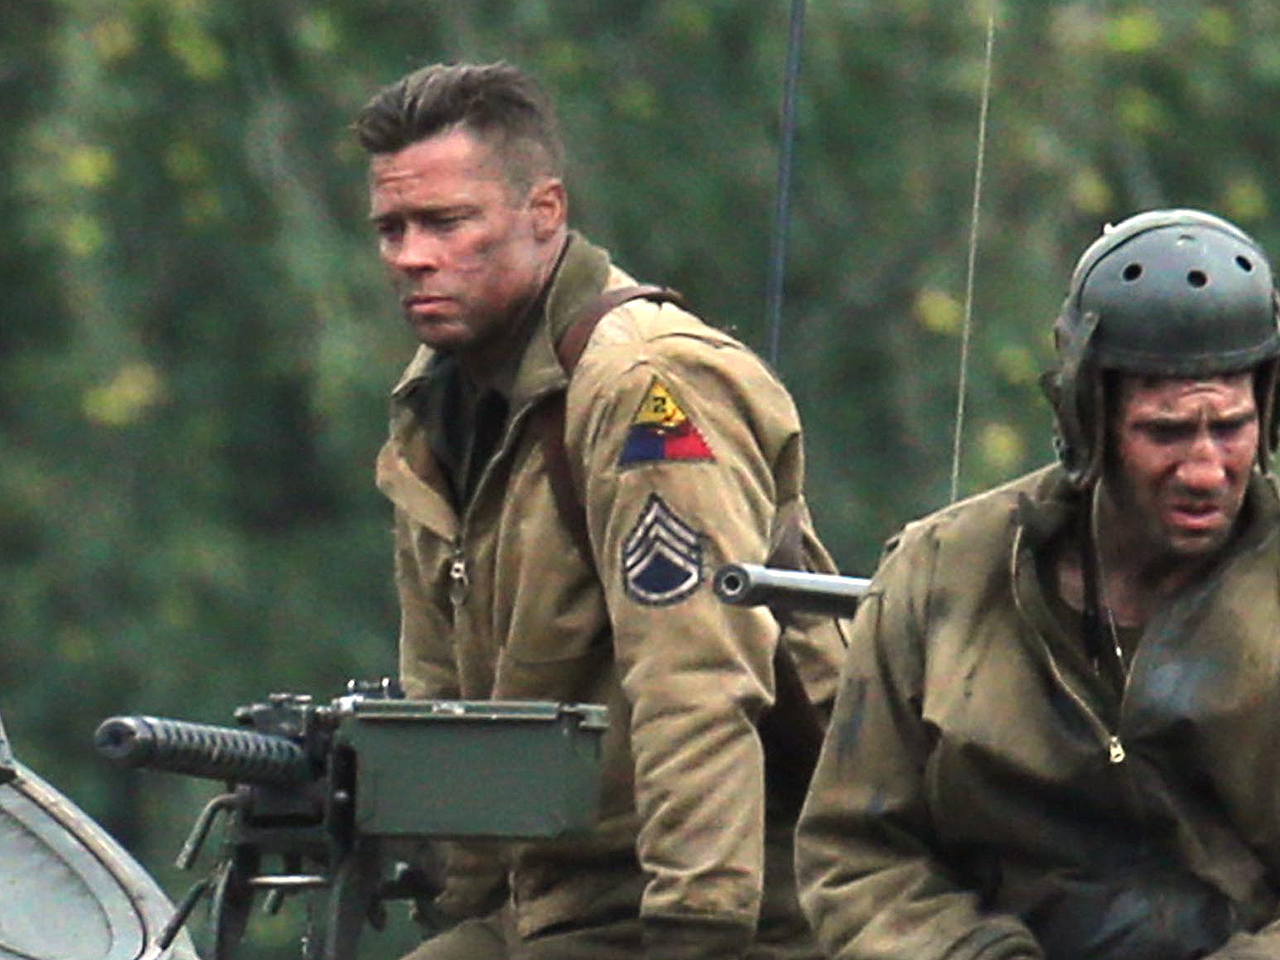 Brad Pitt and Shia LaBeouf are spotted aboard a tank on set of his new film 'Fury'. <P> Pictured: Brad Pitt <P><B>Ref: SPL622707  300913  </B><BR/> Pi...